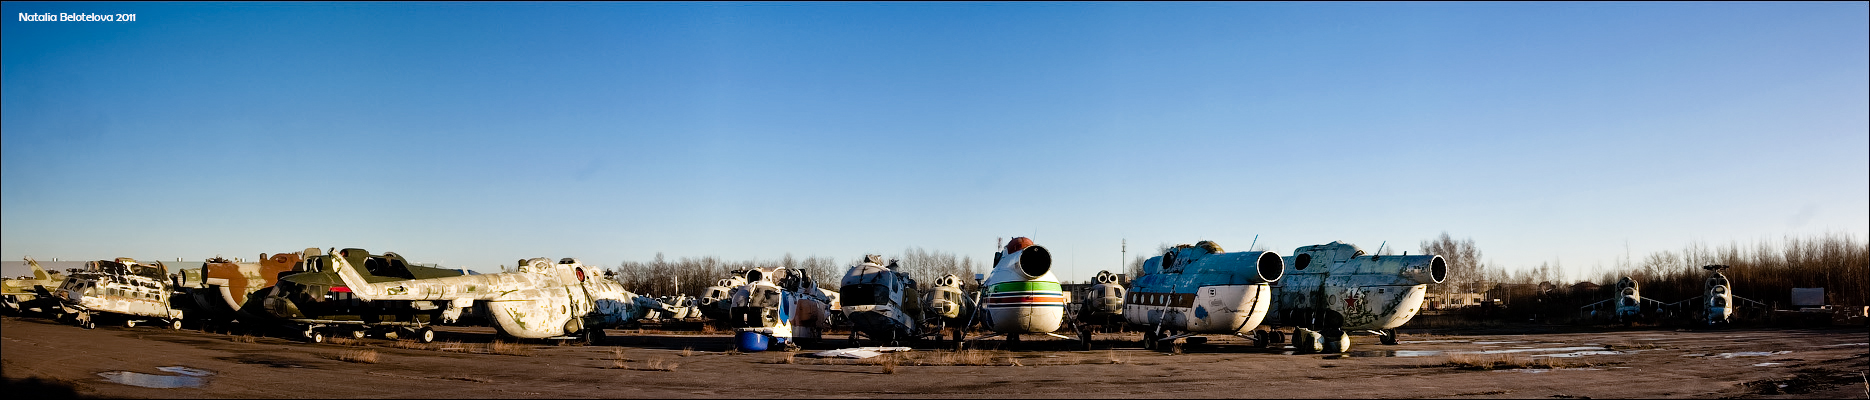 Where Is Abandoned Rotor-Driven Equipment Stored?